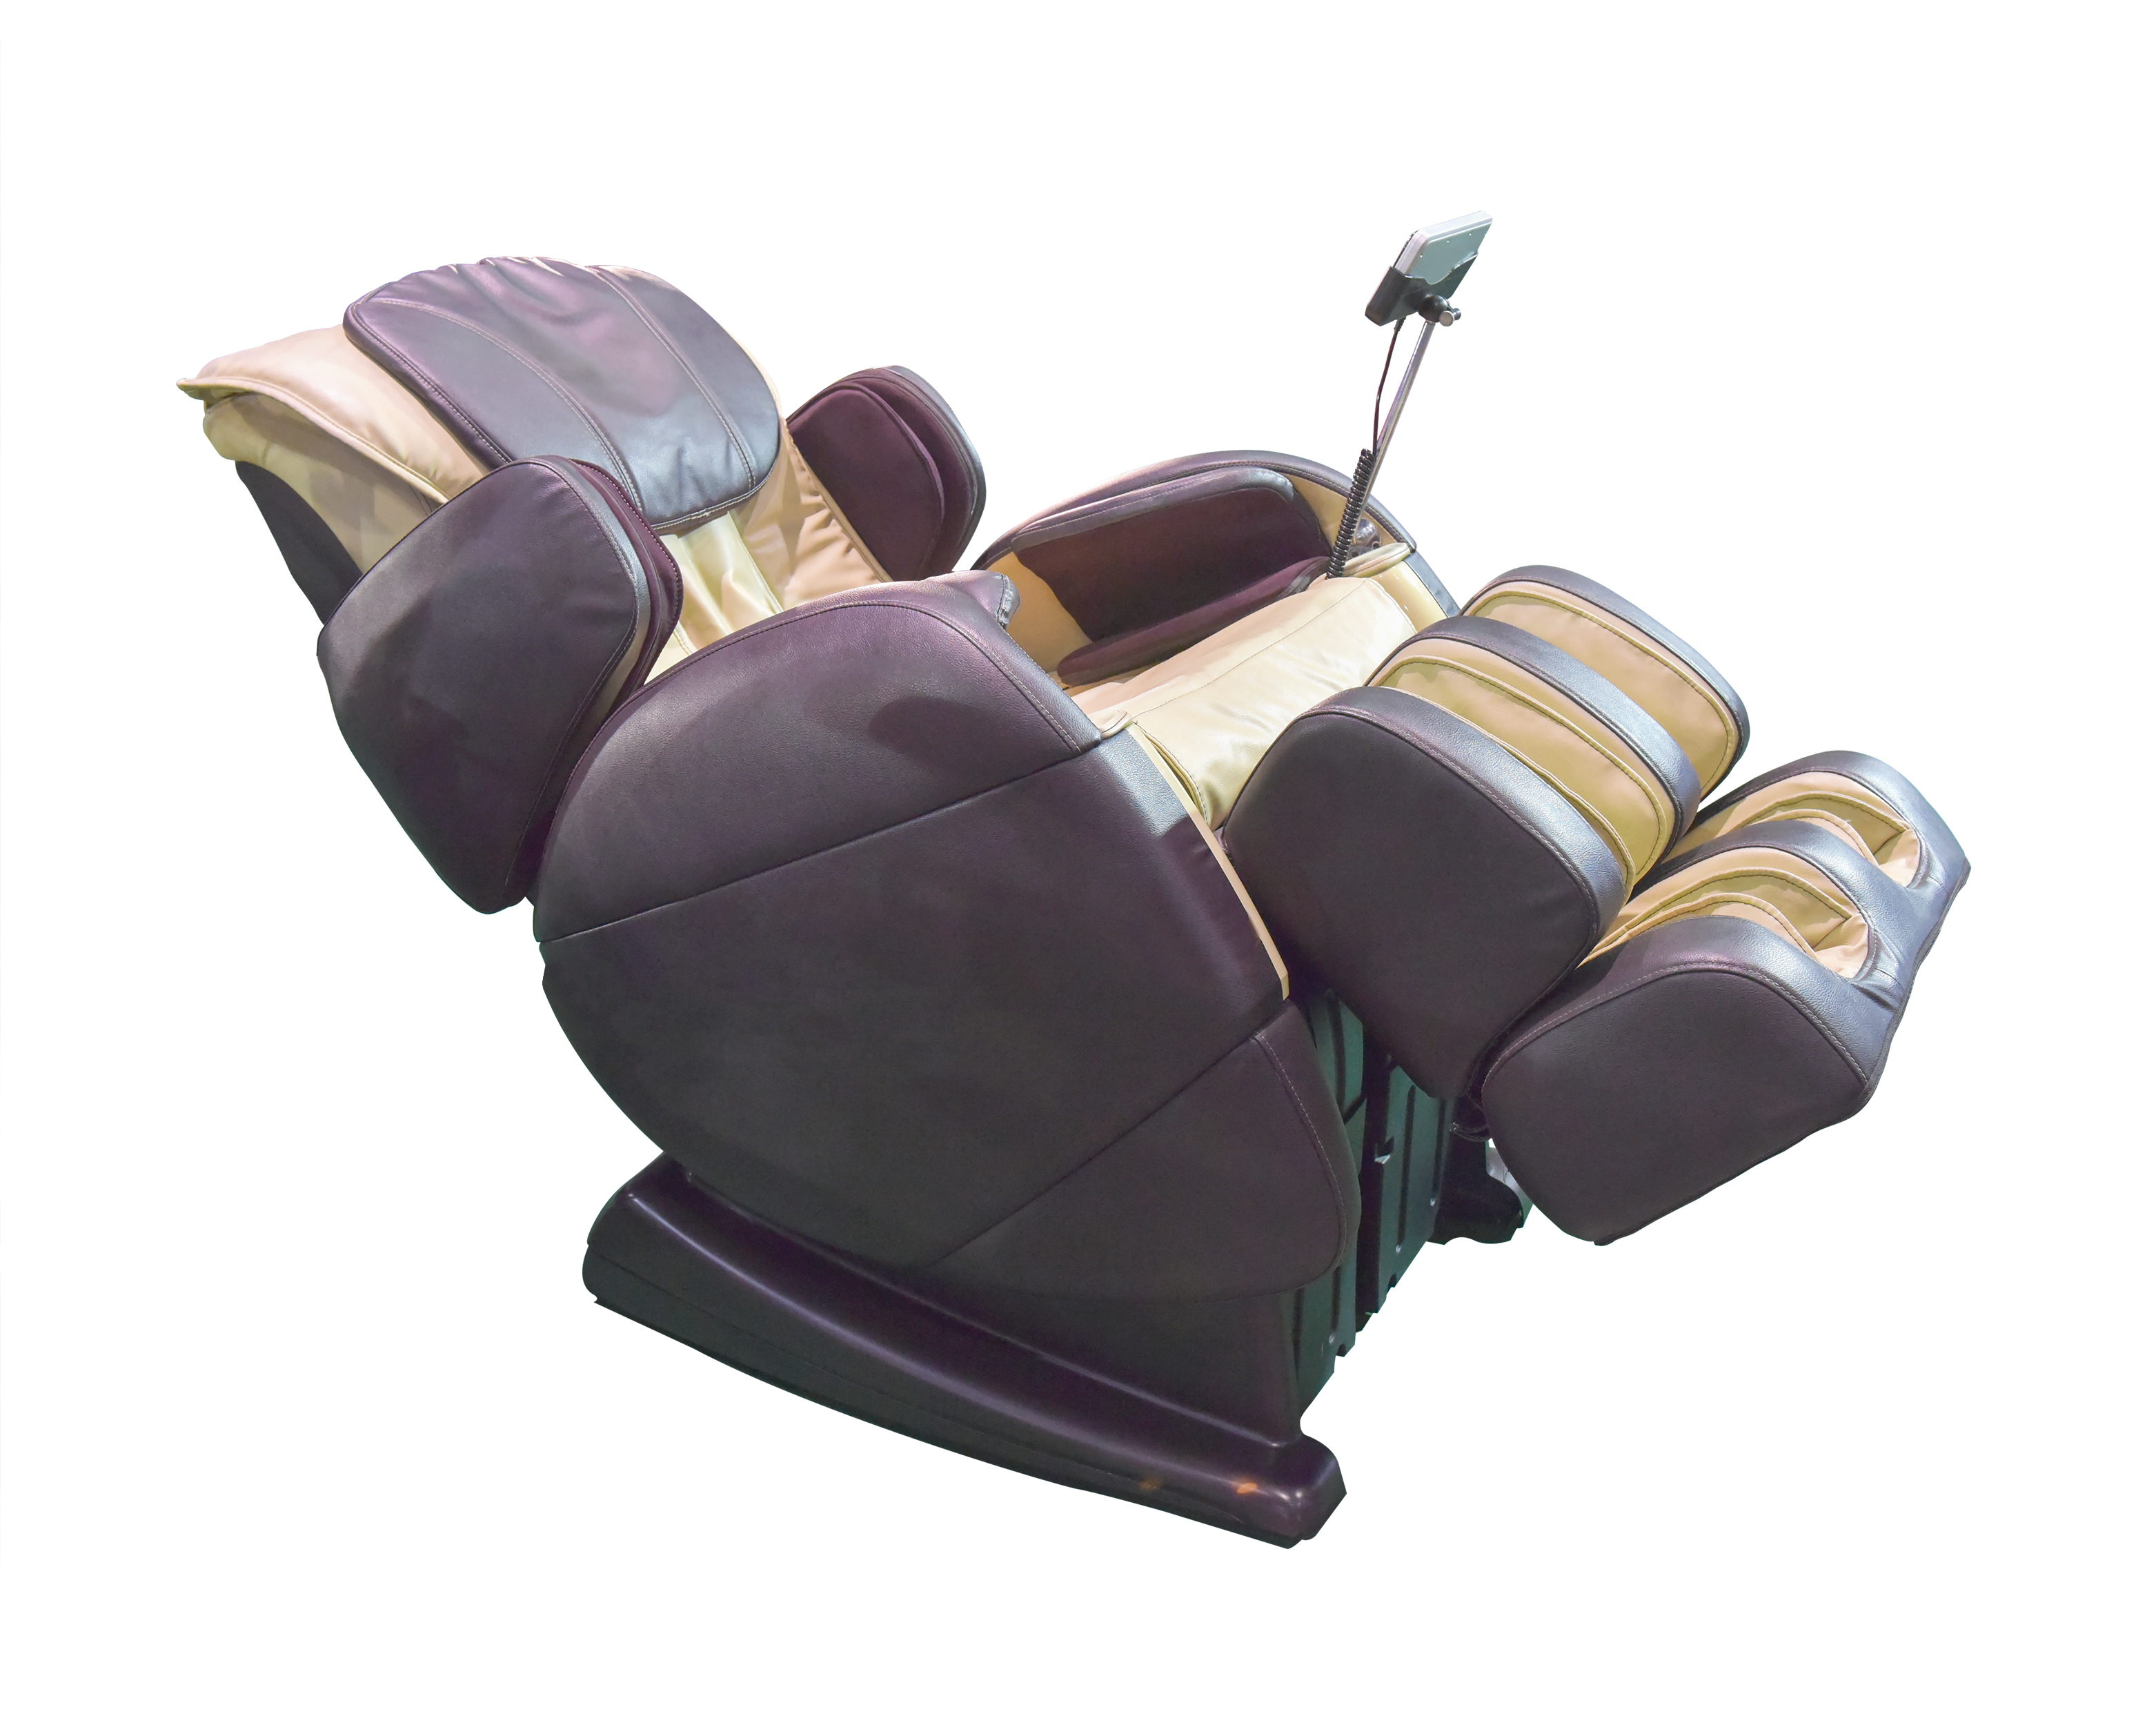 High quality leather massage chair graphic 10 machines for Therapeutic massage chair reviews